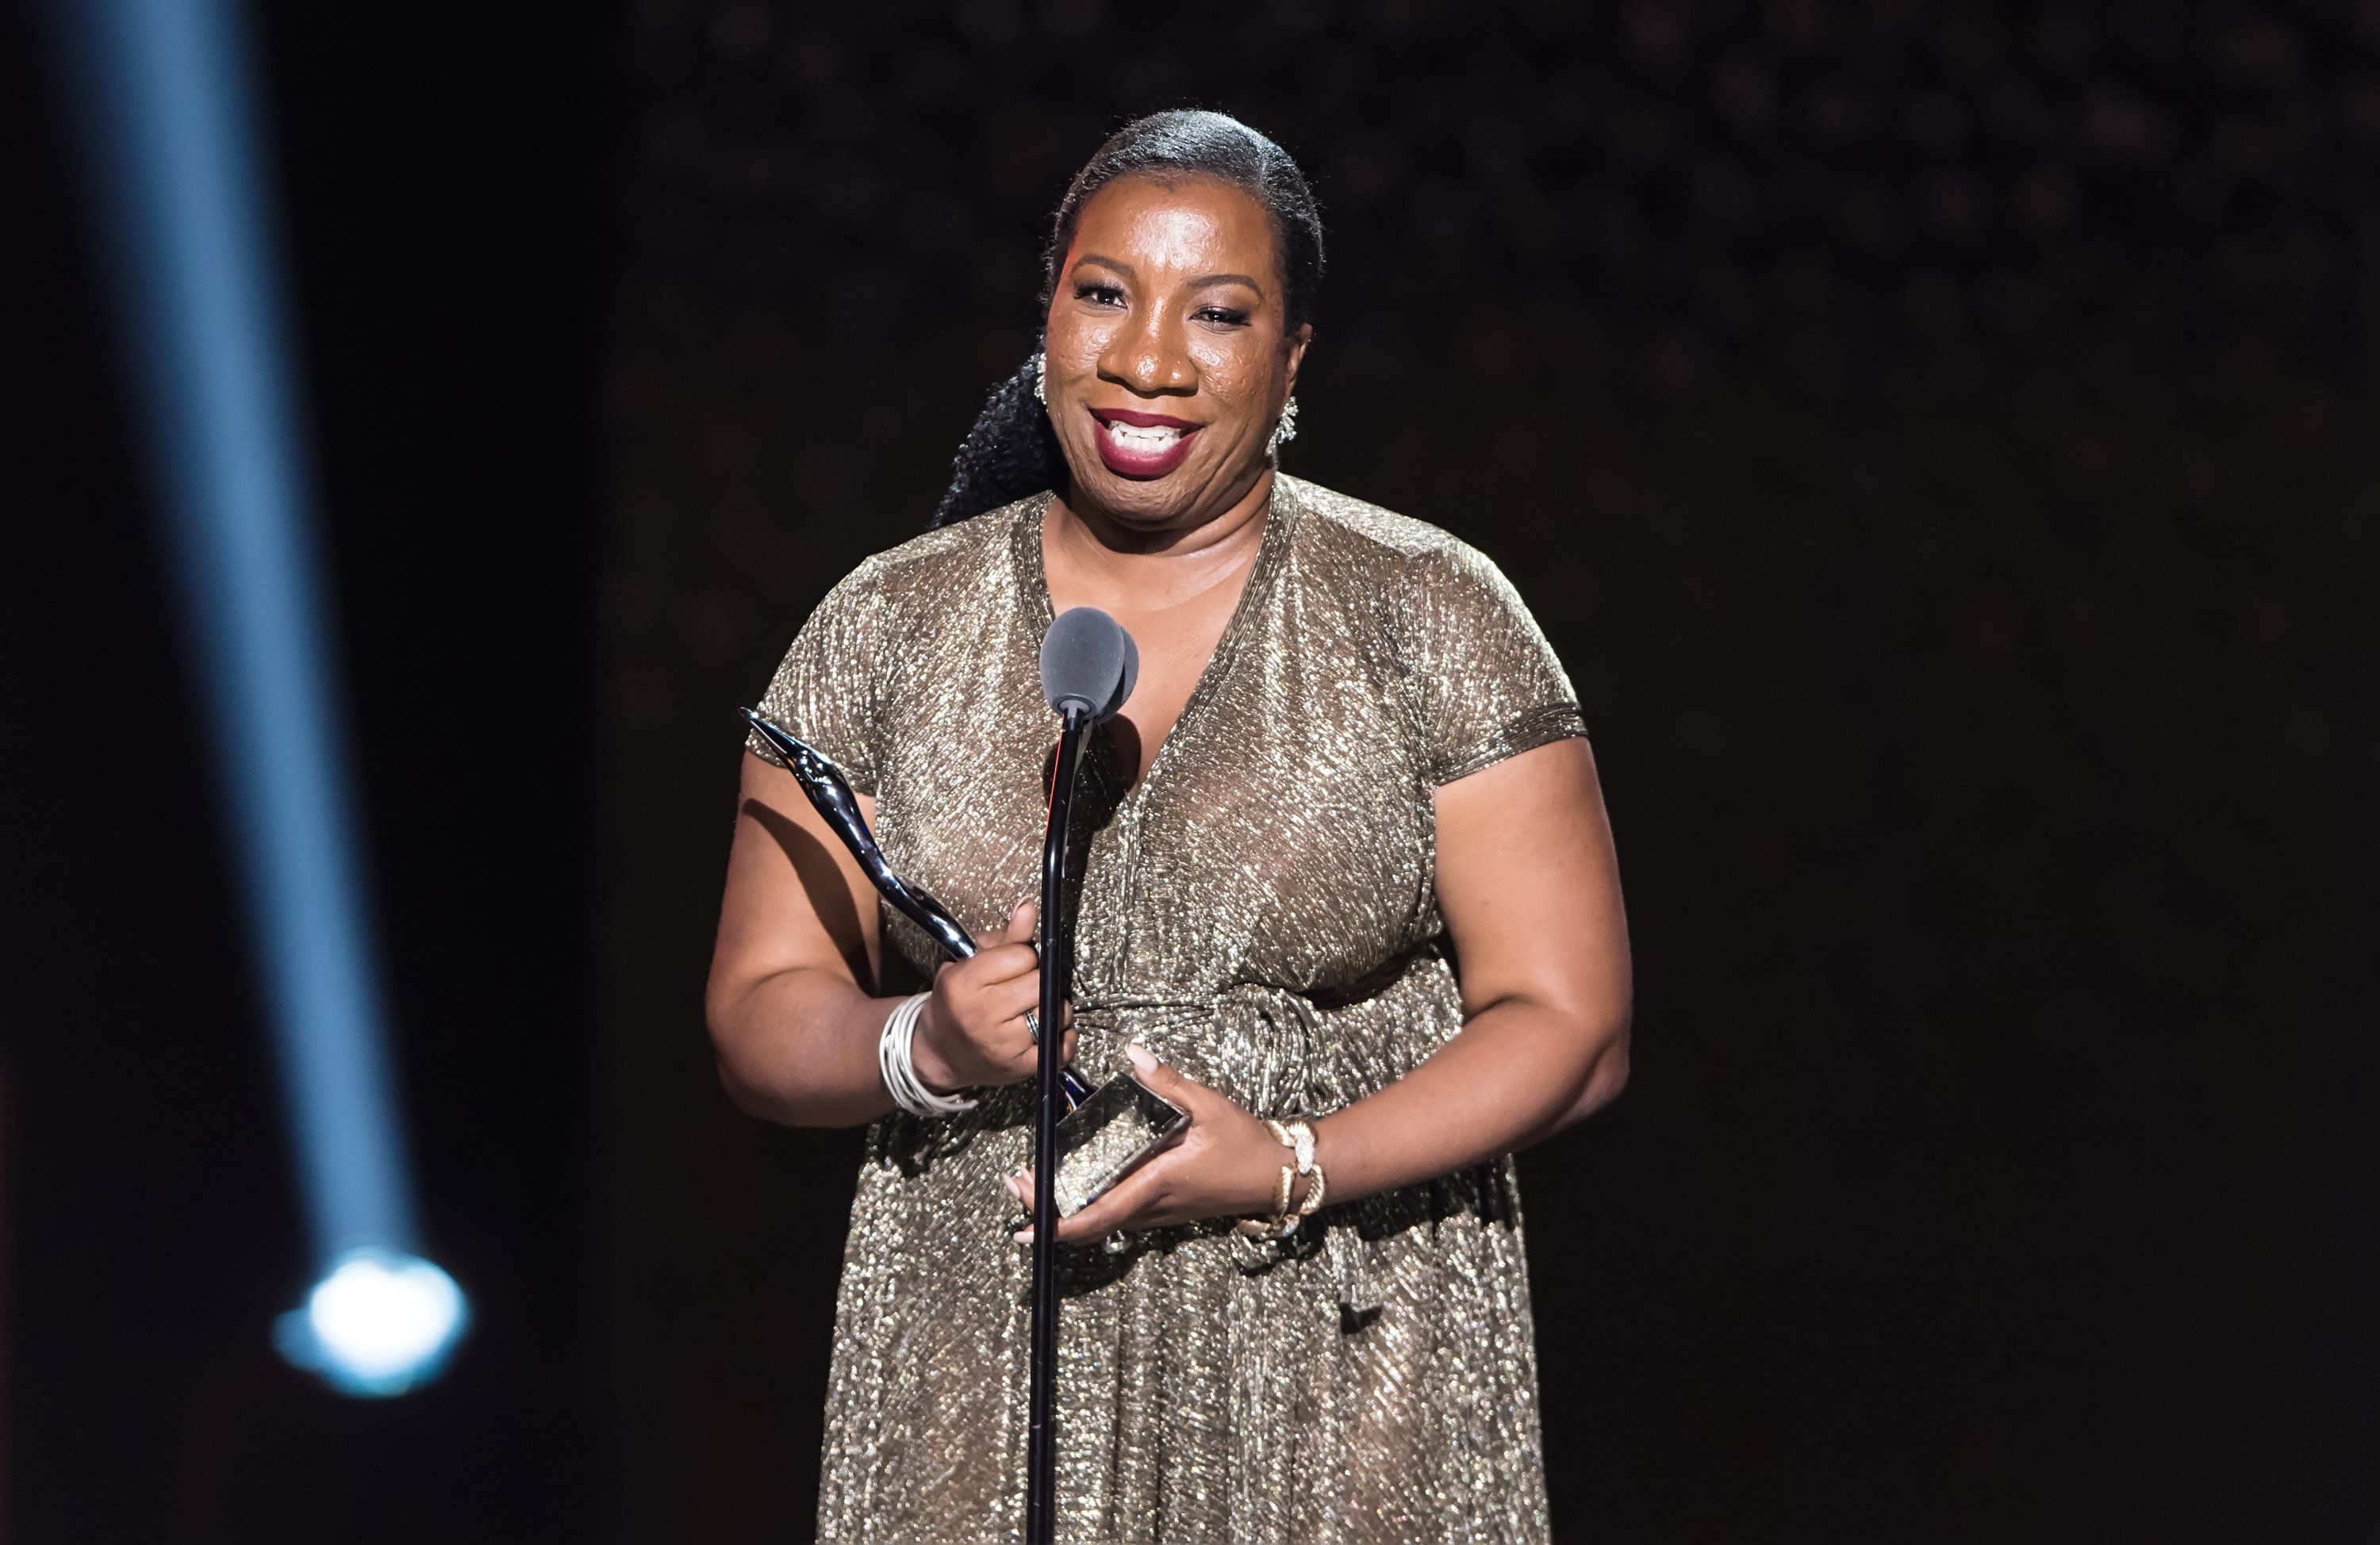 NEWARK, NJ - AUGUST 26:  Civil rights activist who founded the Me Too movement and Community Change Agent award recipient Tarana Burke  speaks on stage during the 2018 Black Girls Rock! at New Jersey Performing Arts Center on August 26, 2018 in Newark, New Jersey.  (Photo by Gilbert Carrasquillo/WireImage)